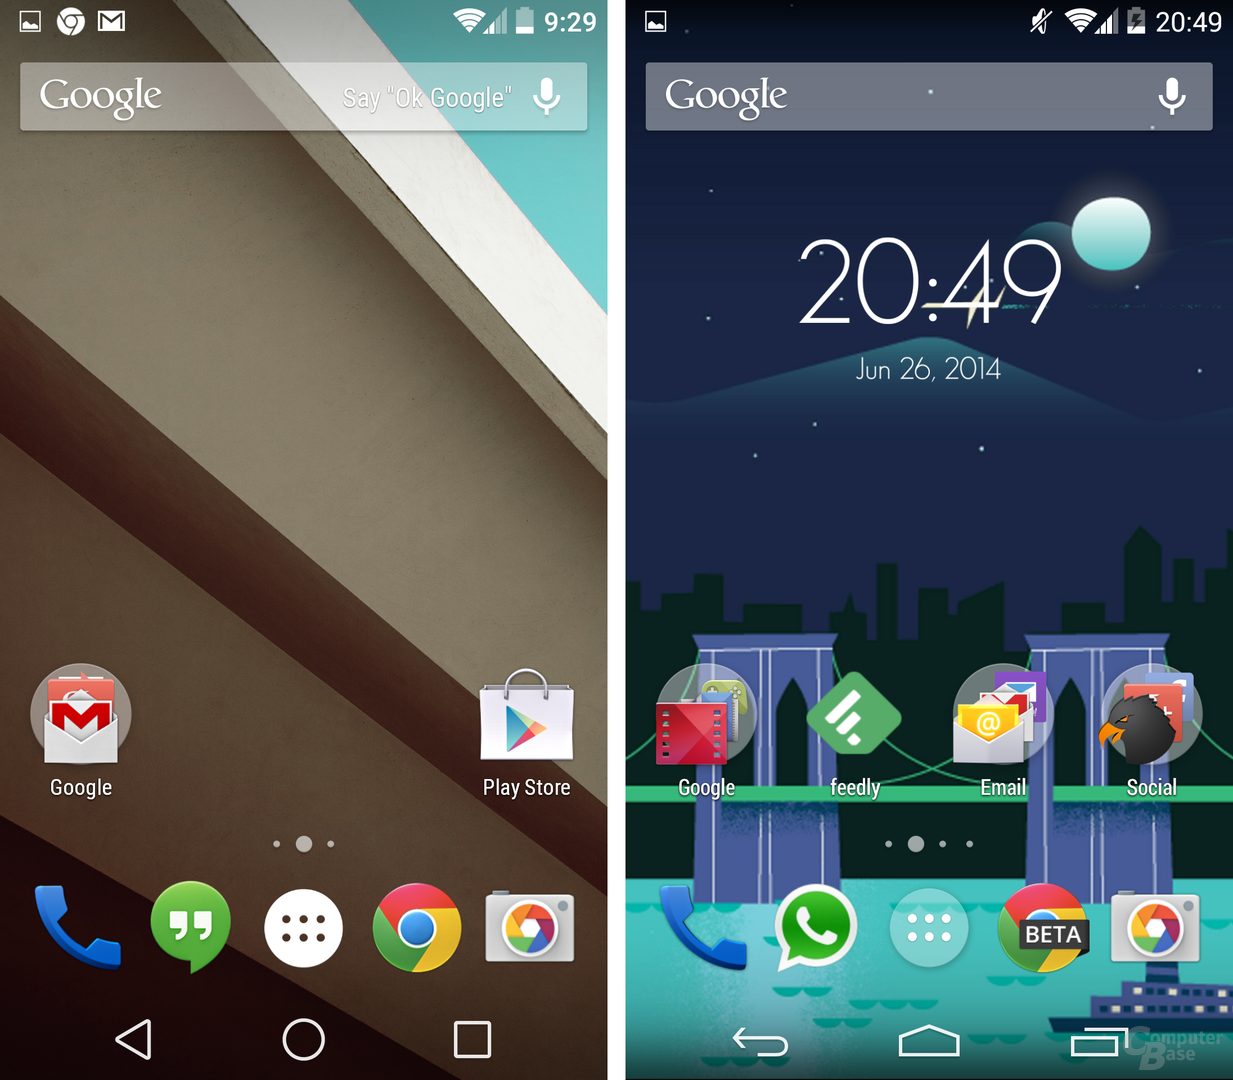 Android L / Android 4.4 KitKat – Homescreen